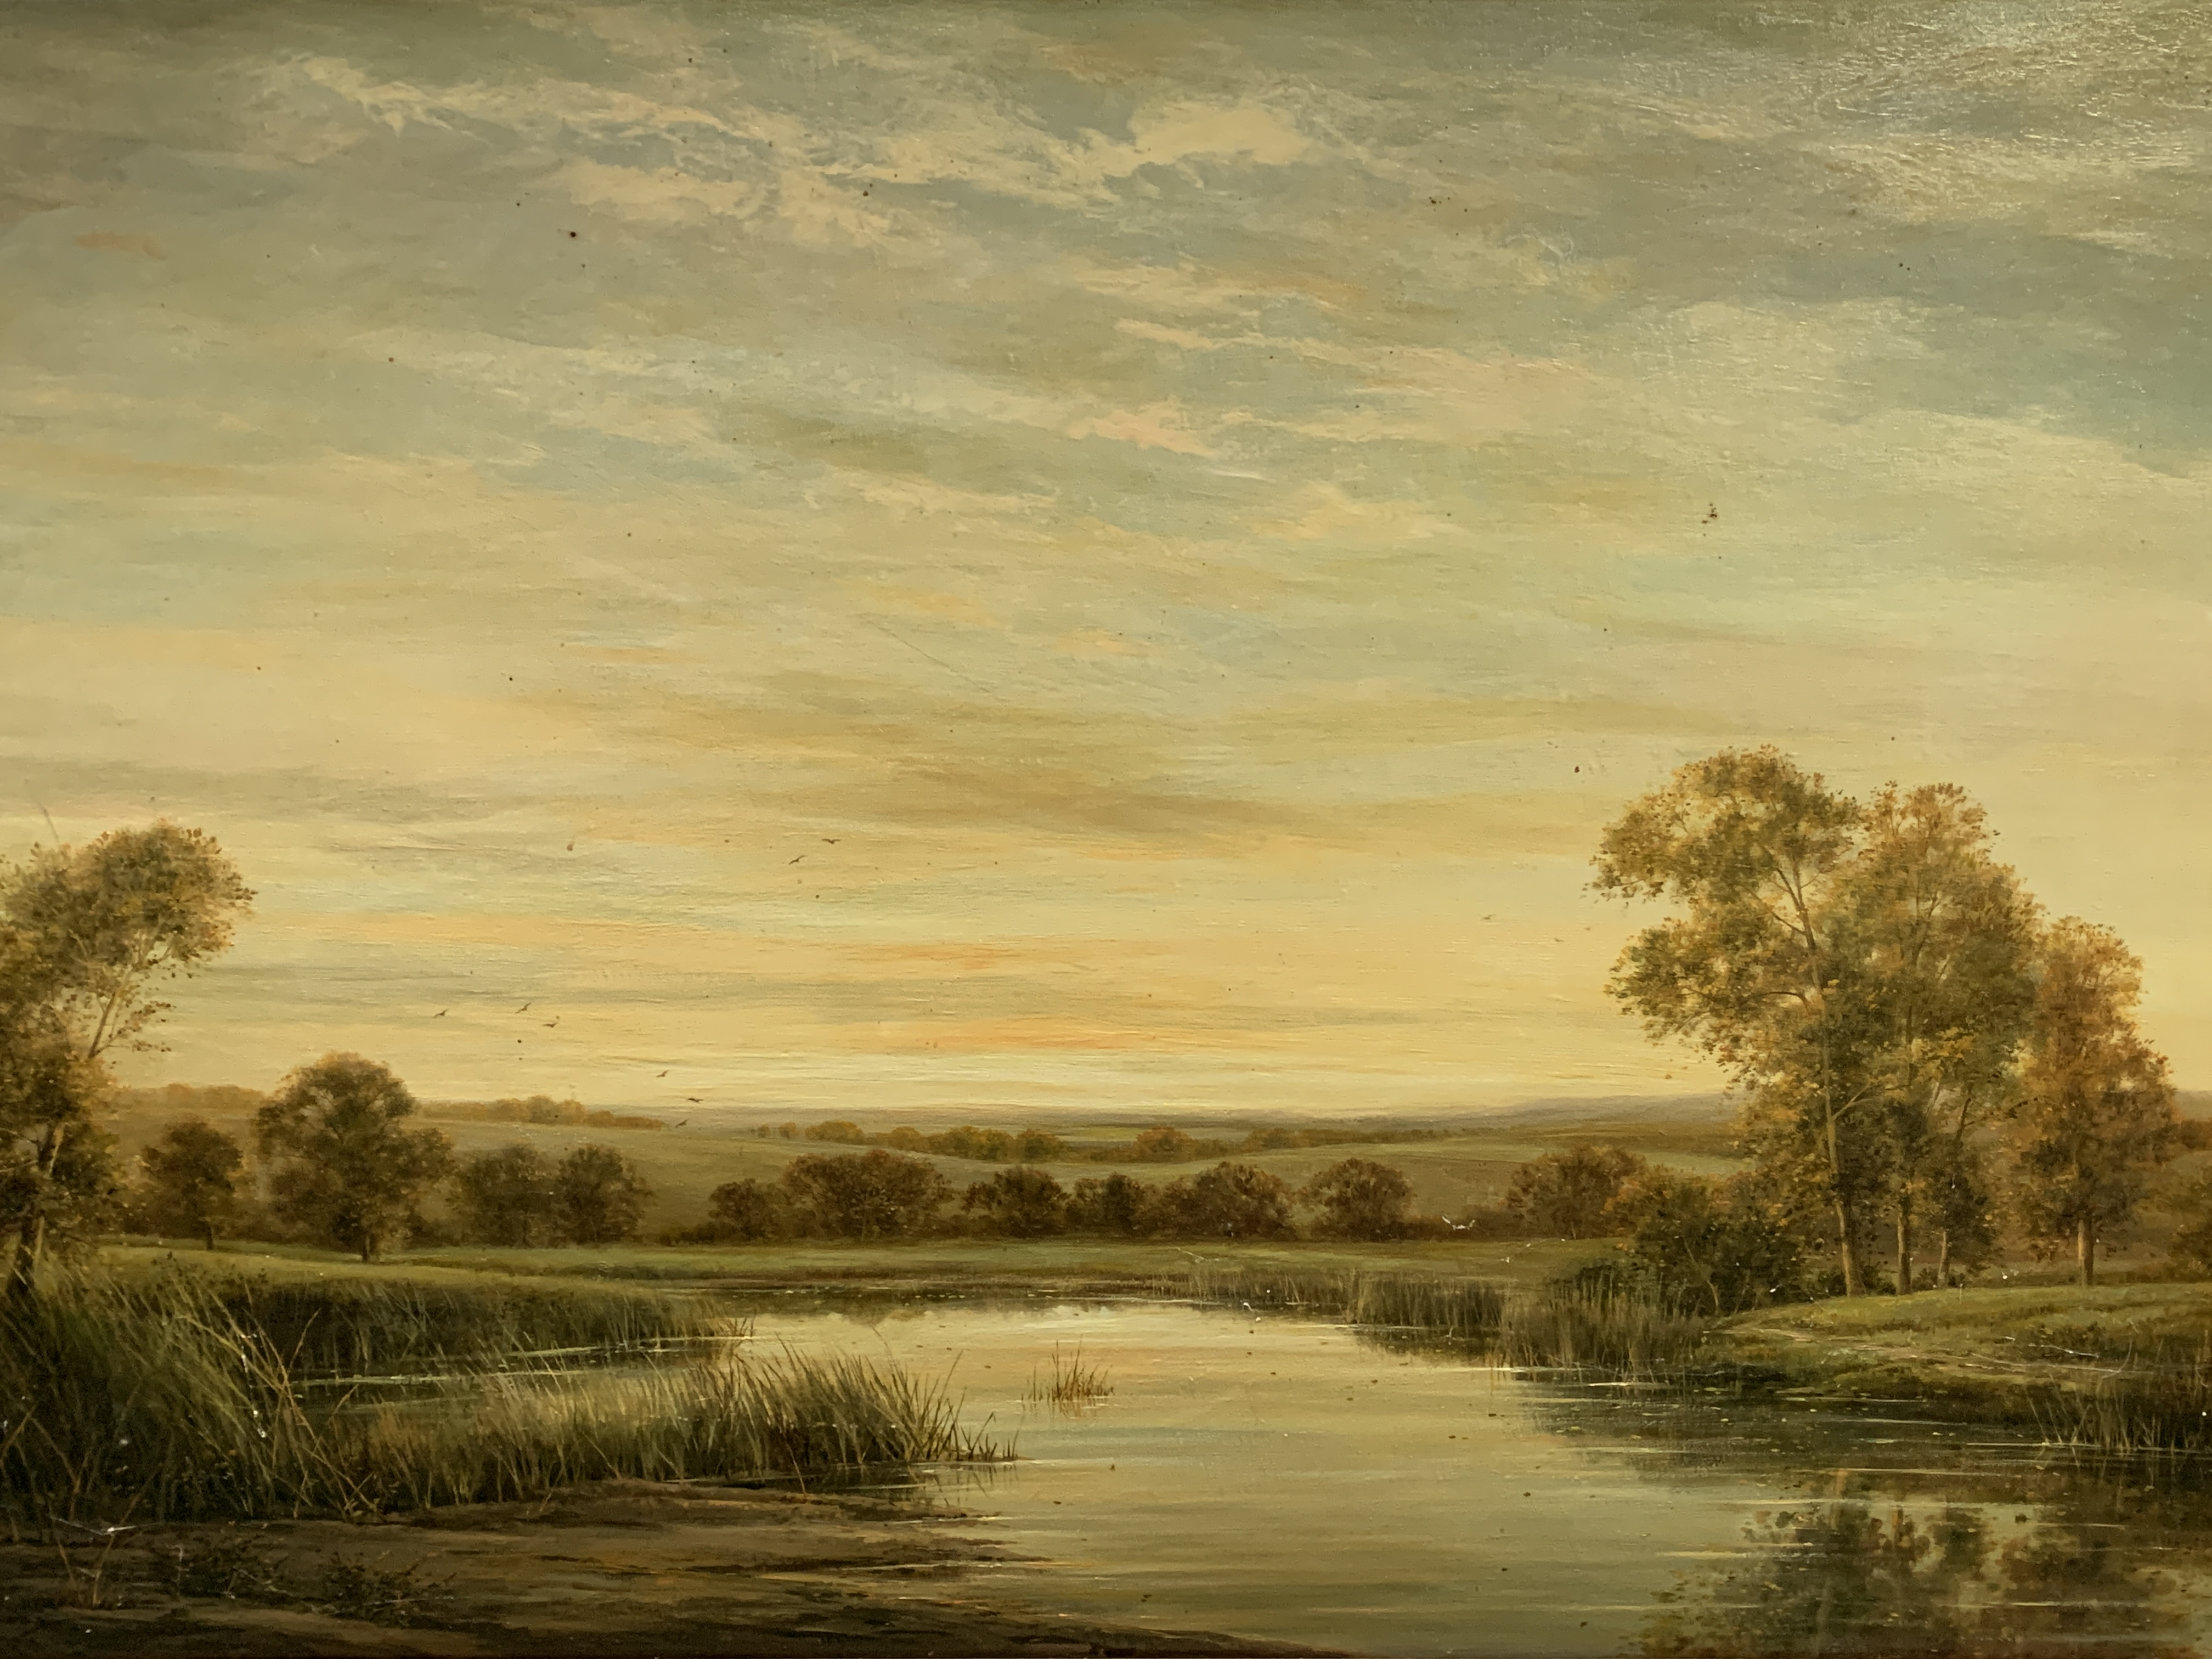 """Gilt framed oil on canvas of a river and landscape, written on reverse """"On the River Kennett"""" - Image 3 of 5"""